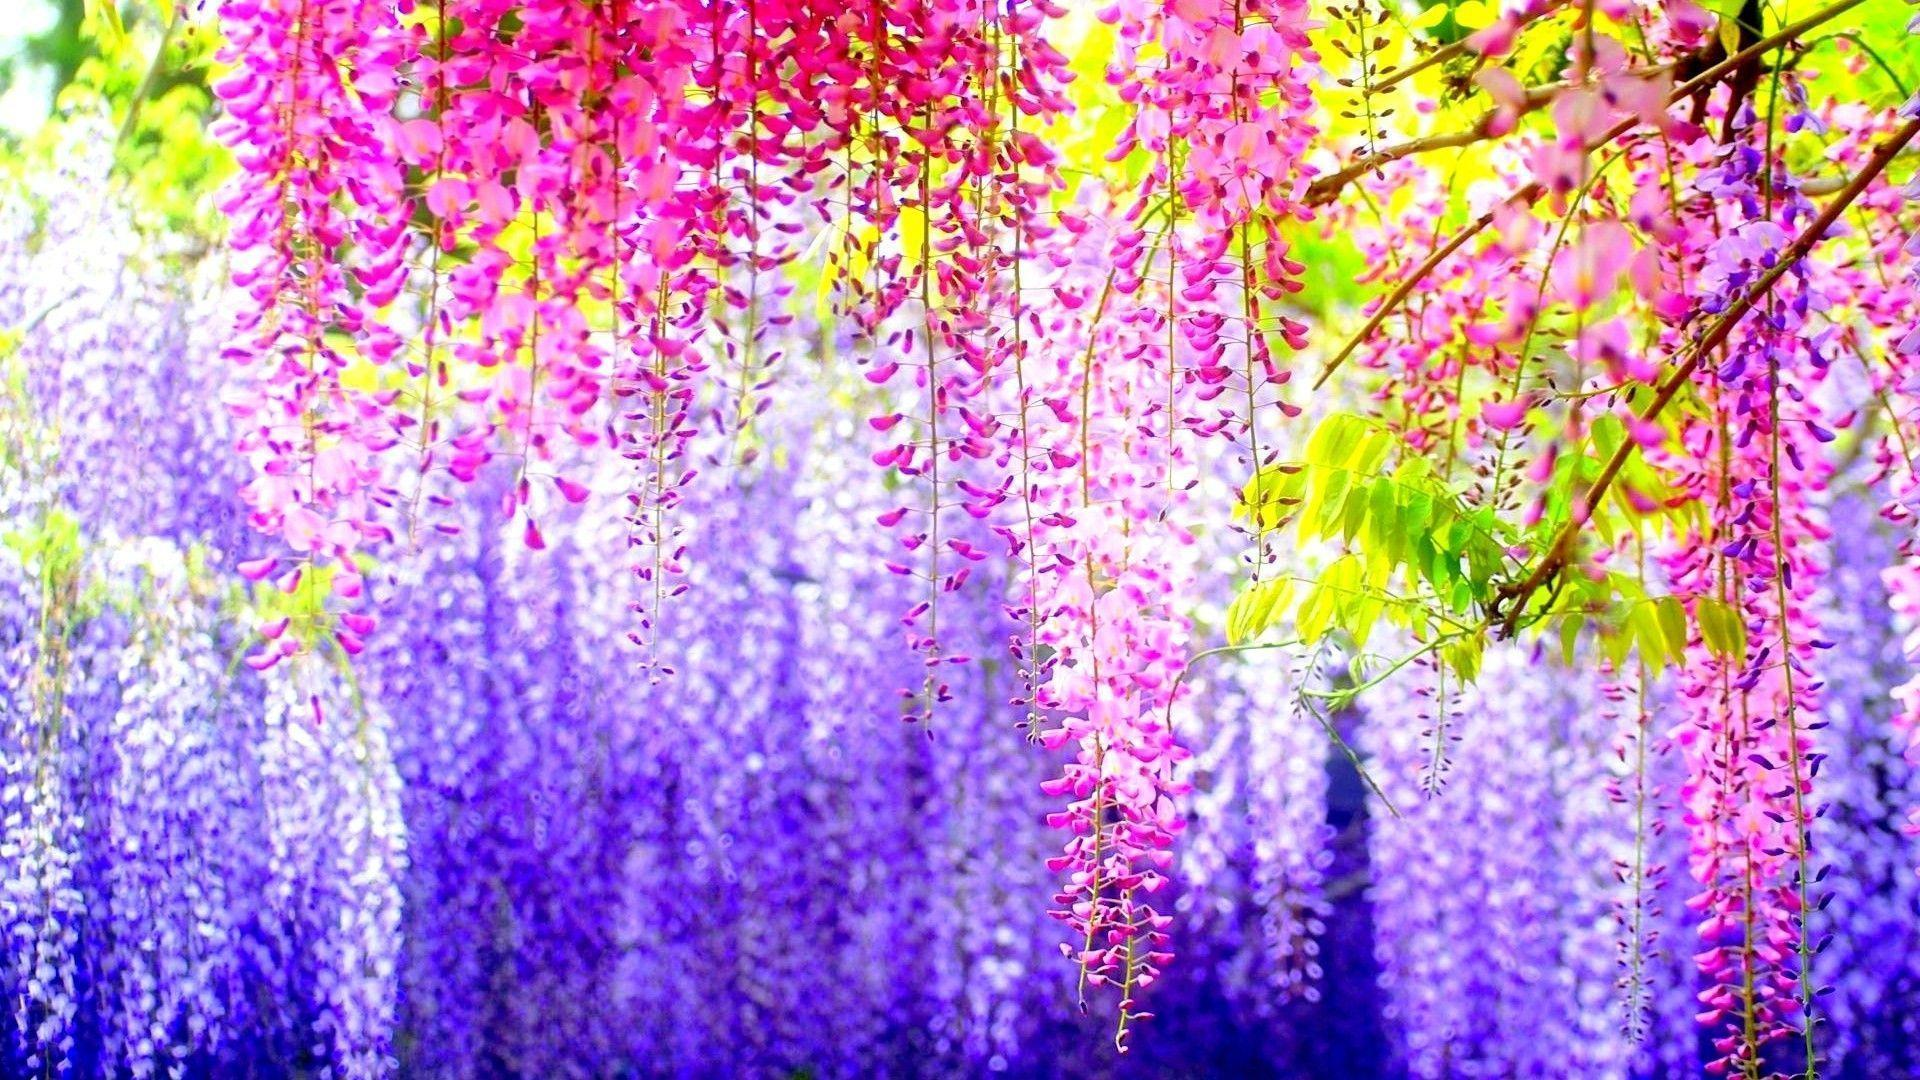 Pretty Flowers Backgrounds - Wallpaper Cave